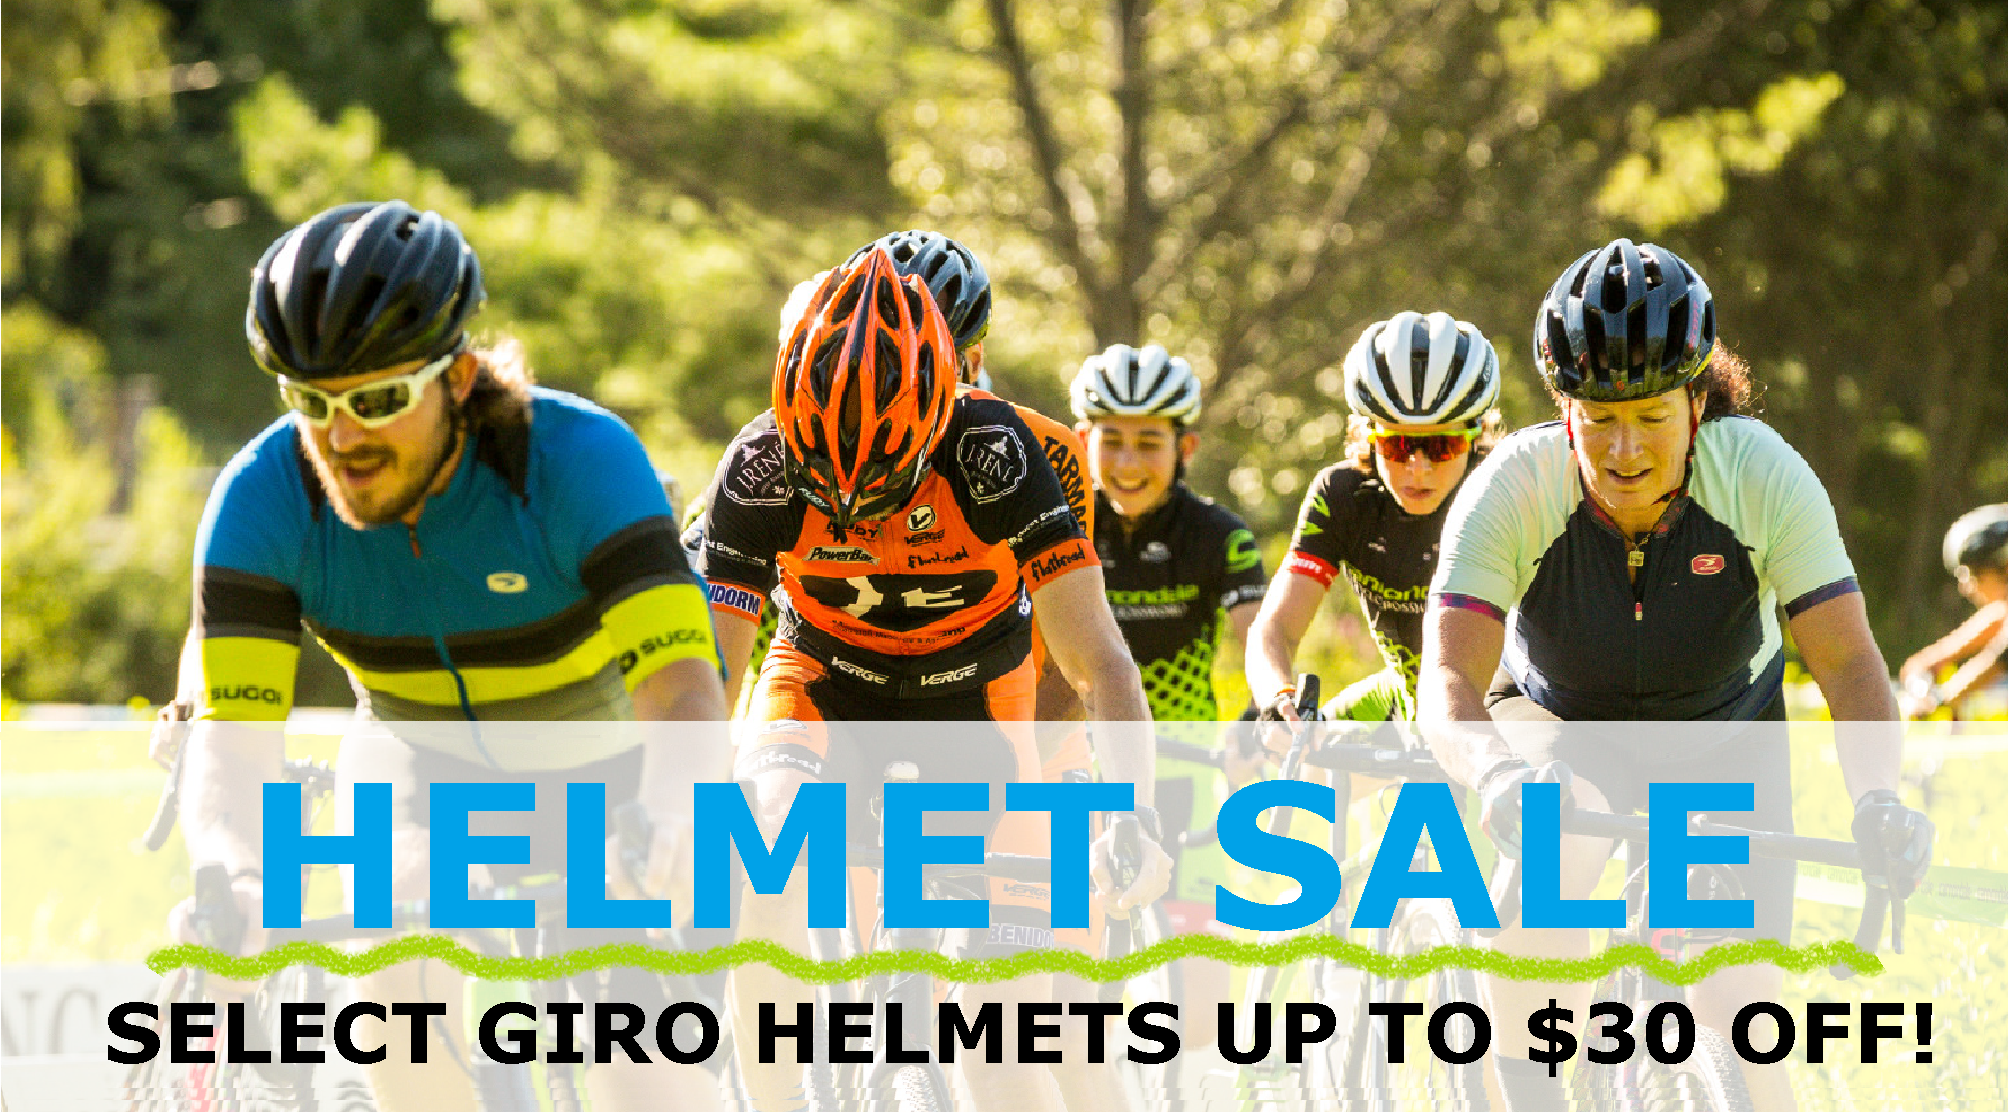 HELMET SALE! SELECT GIRO HELMETS UP TO $30 OFF!